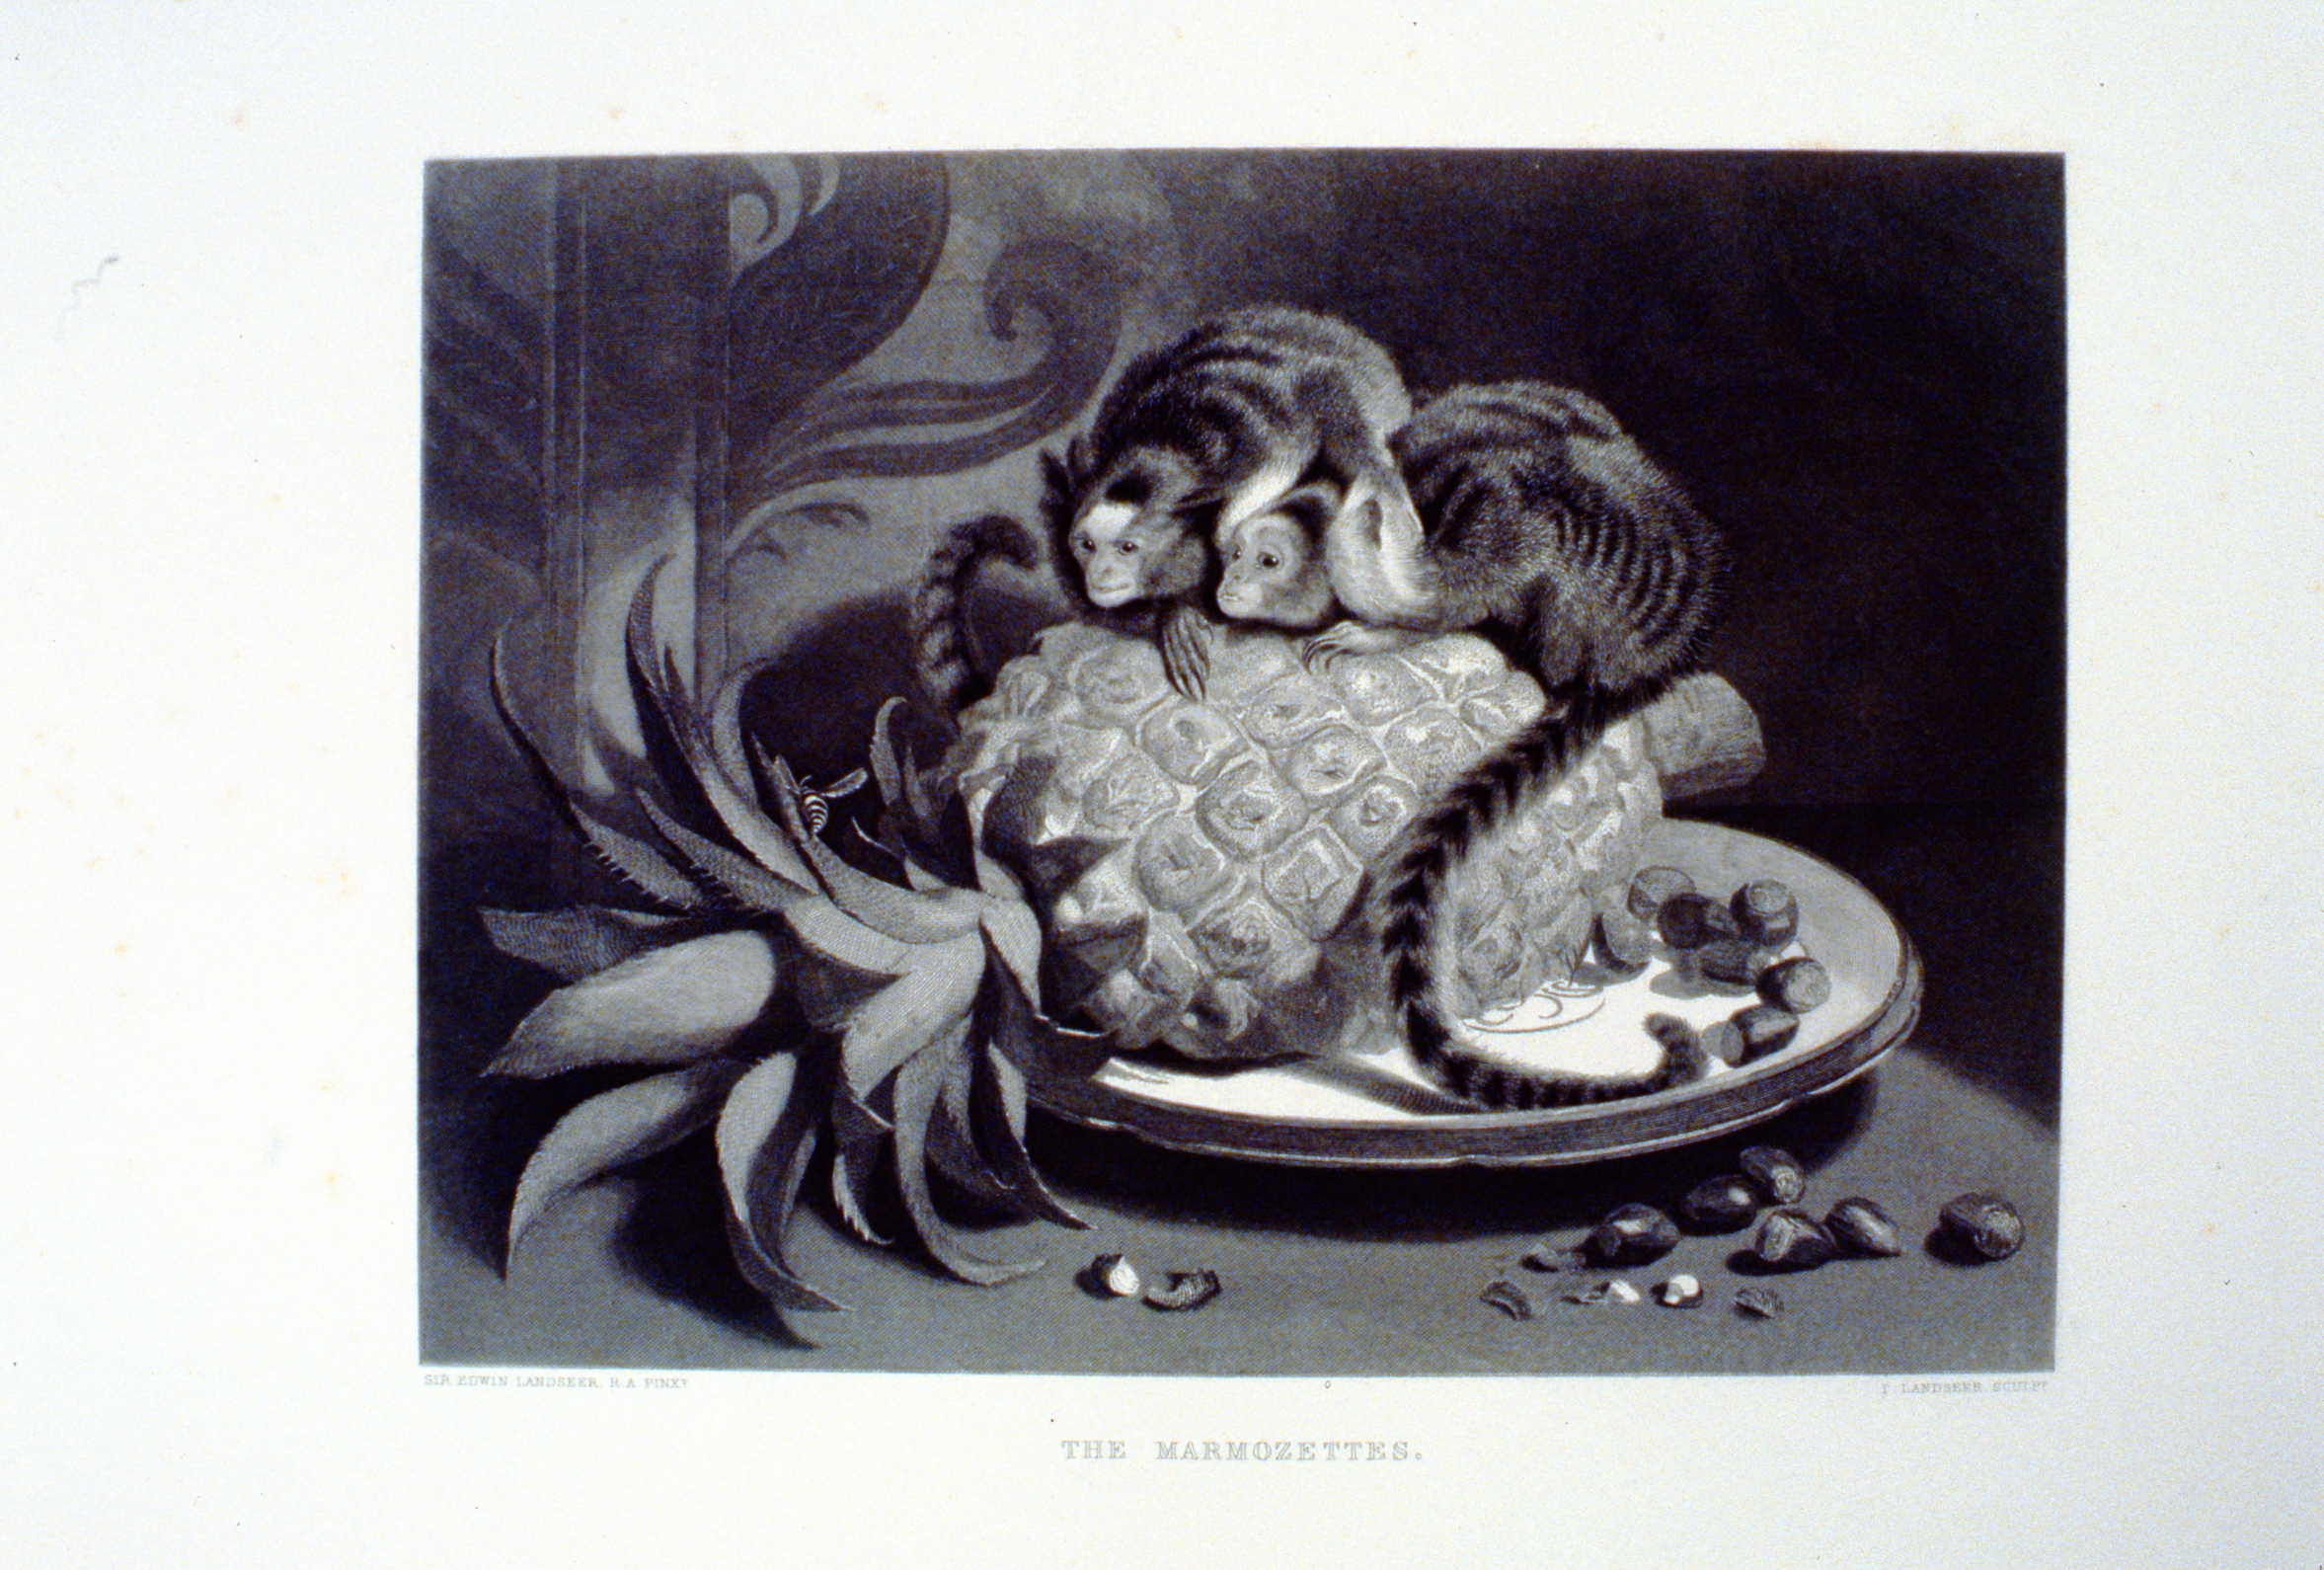 The Marmozettes , c. late 19th Century, T. Landseer, steel engraving, 18.6 cm x 25 cm, 1996.08.42, gift of Yvonne Adams